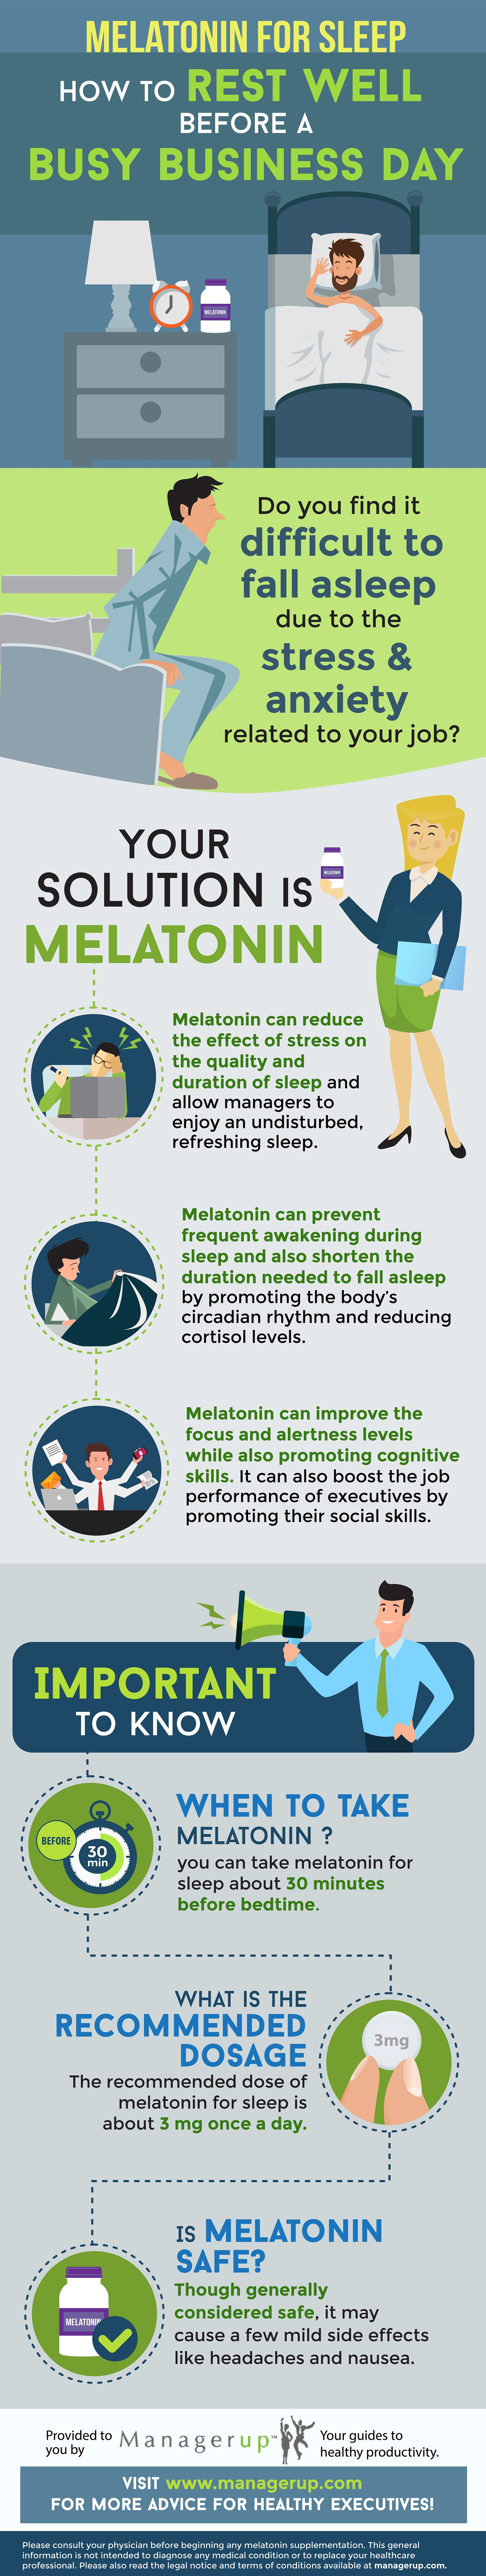 Melatonin for sleep infographic